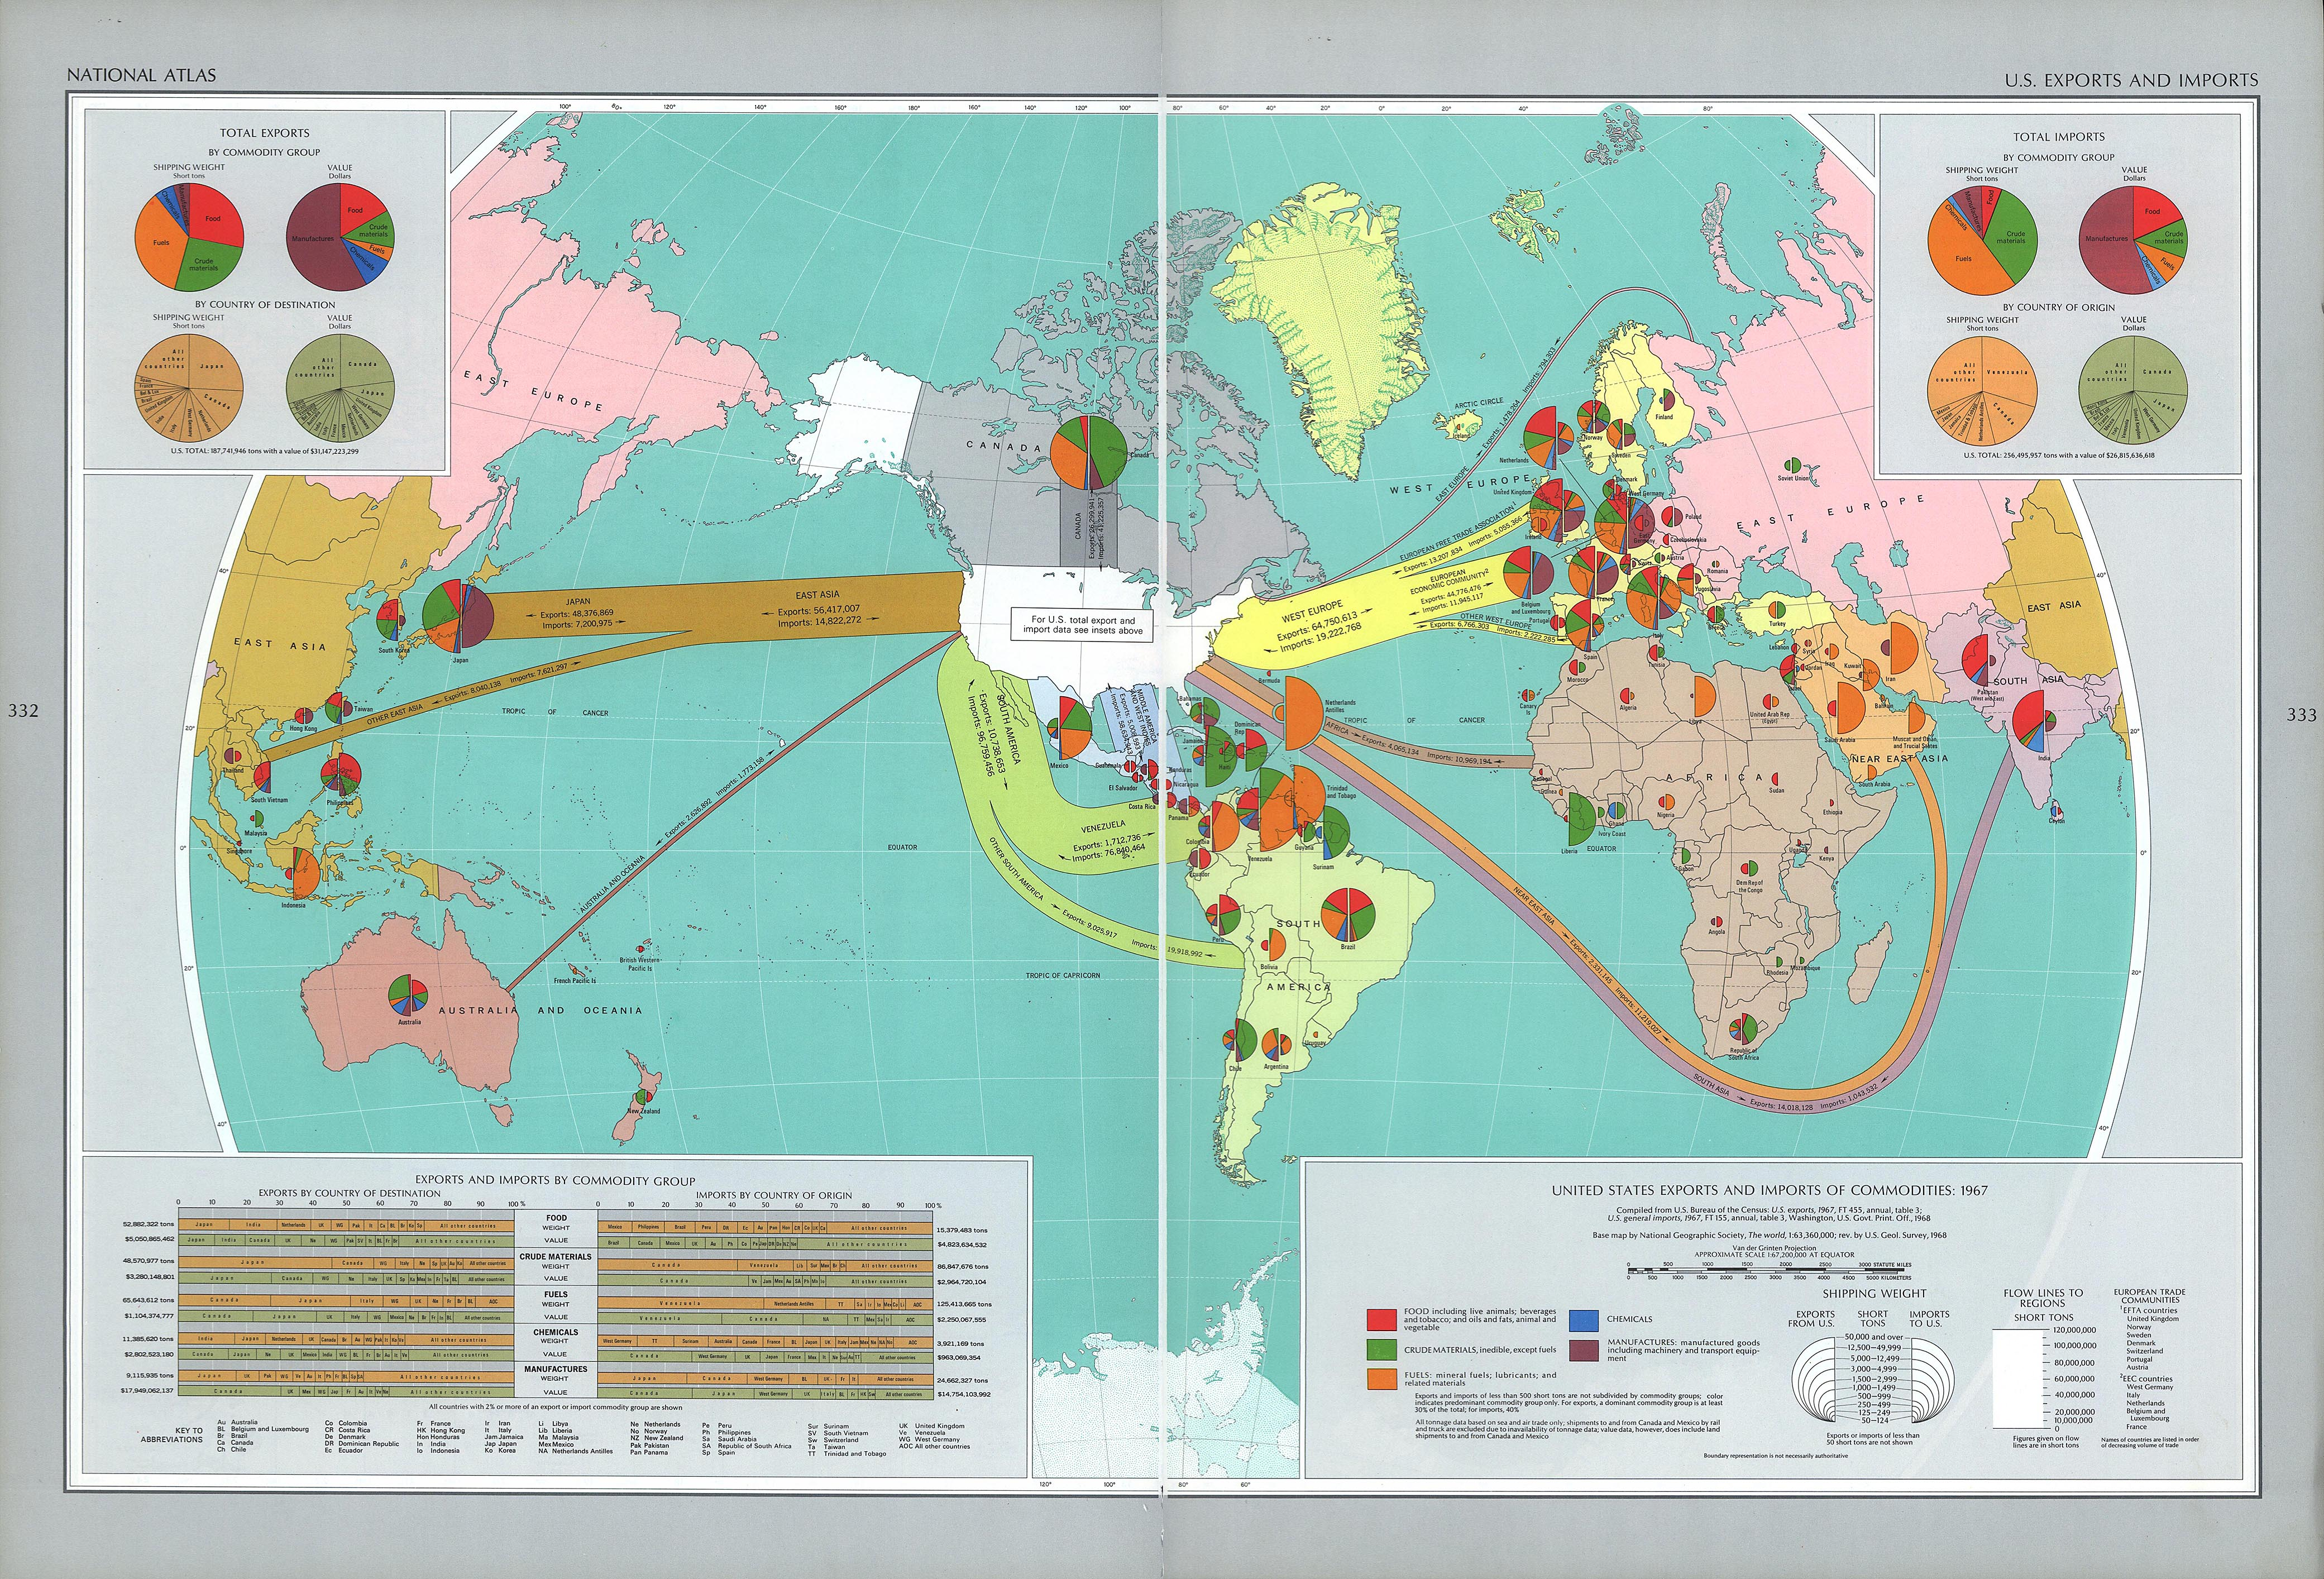 National Atlas Of USA Exports And Imports Mappenstance - Atlas map of us